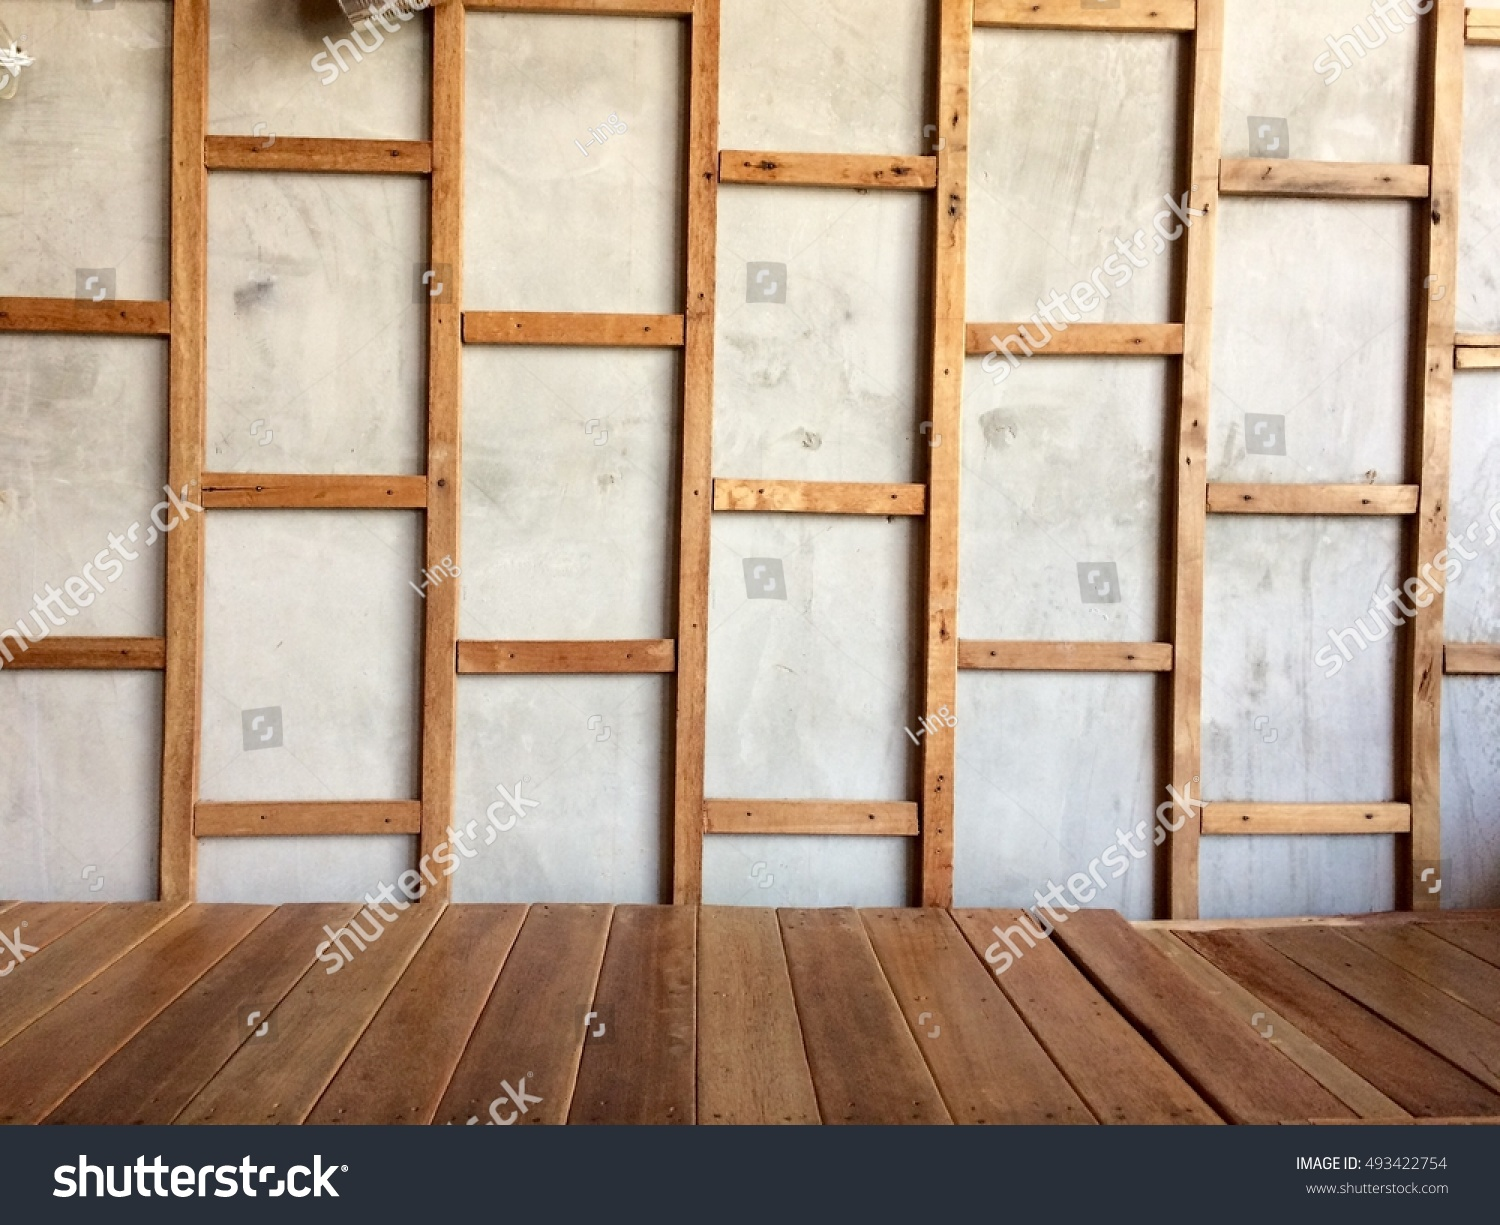 Wooden Frame On Wall Wooden Floor Stock Photo (Royalty Free ...